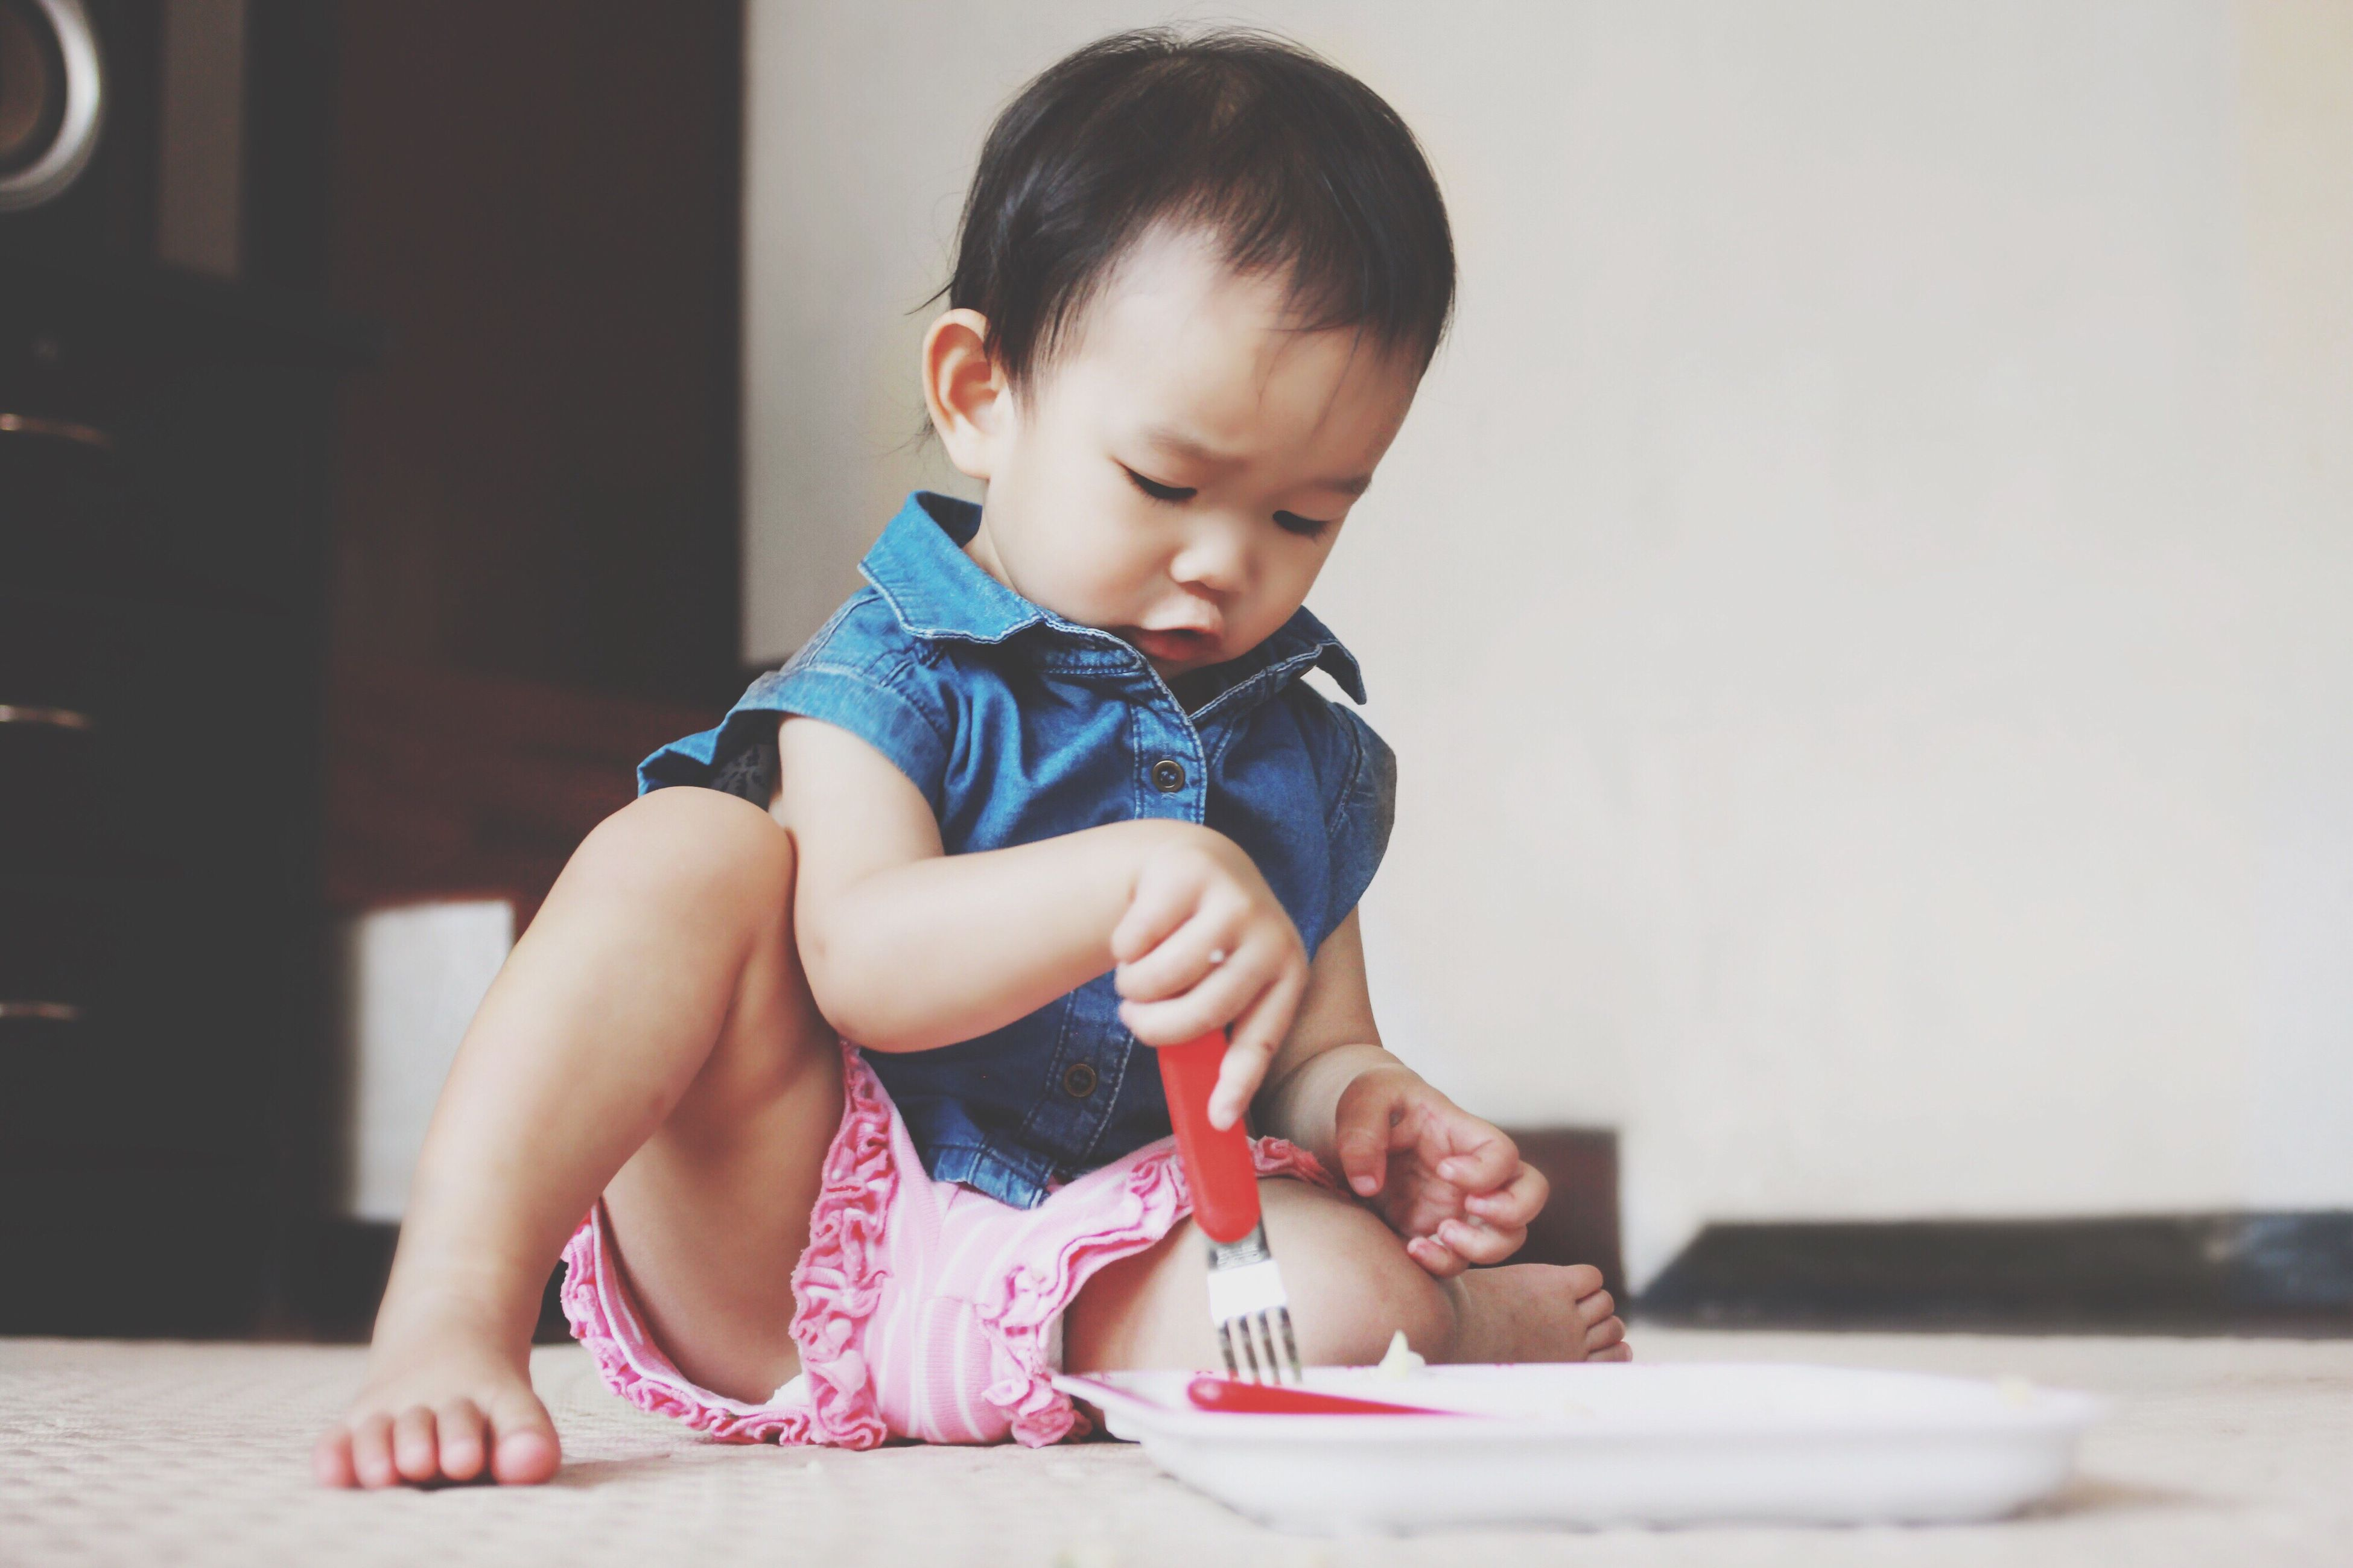 cute, toddler, childhood, real people, home interior, one person, indoors, holding, front view, human hand, sitting, touching, baby, table, babyhood, people, day